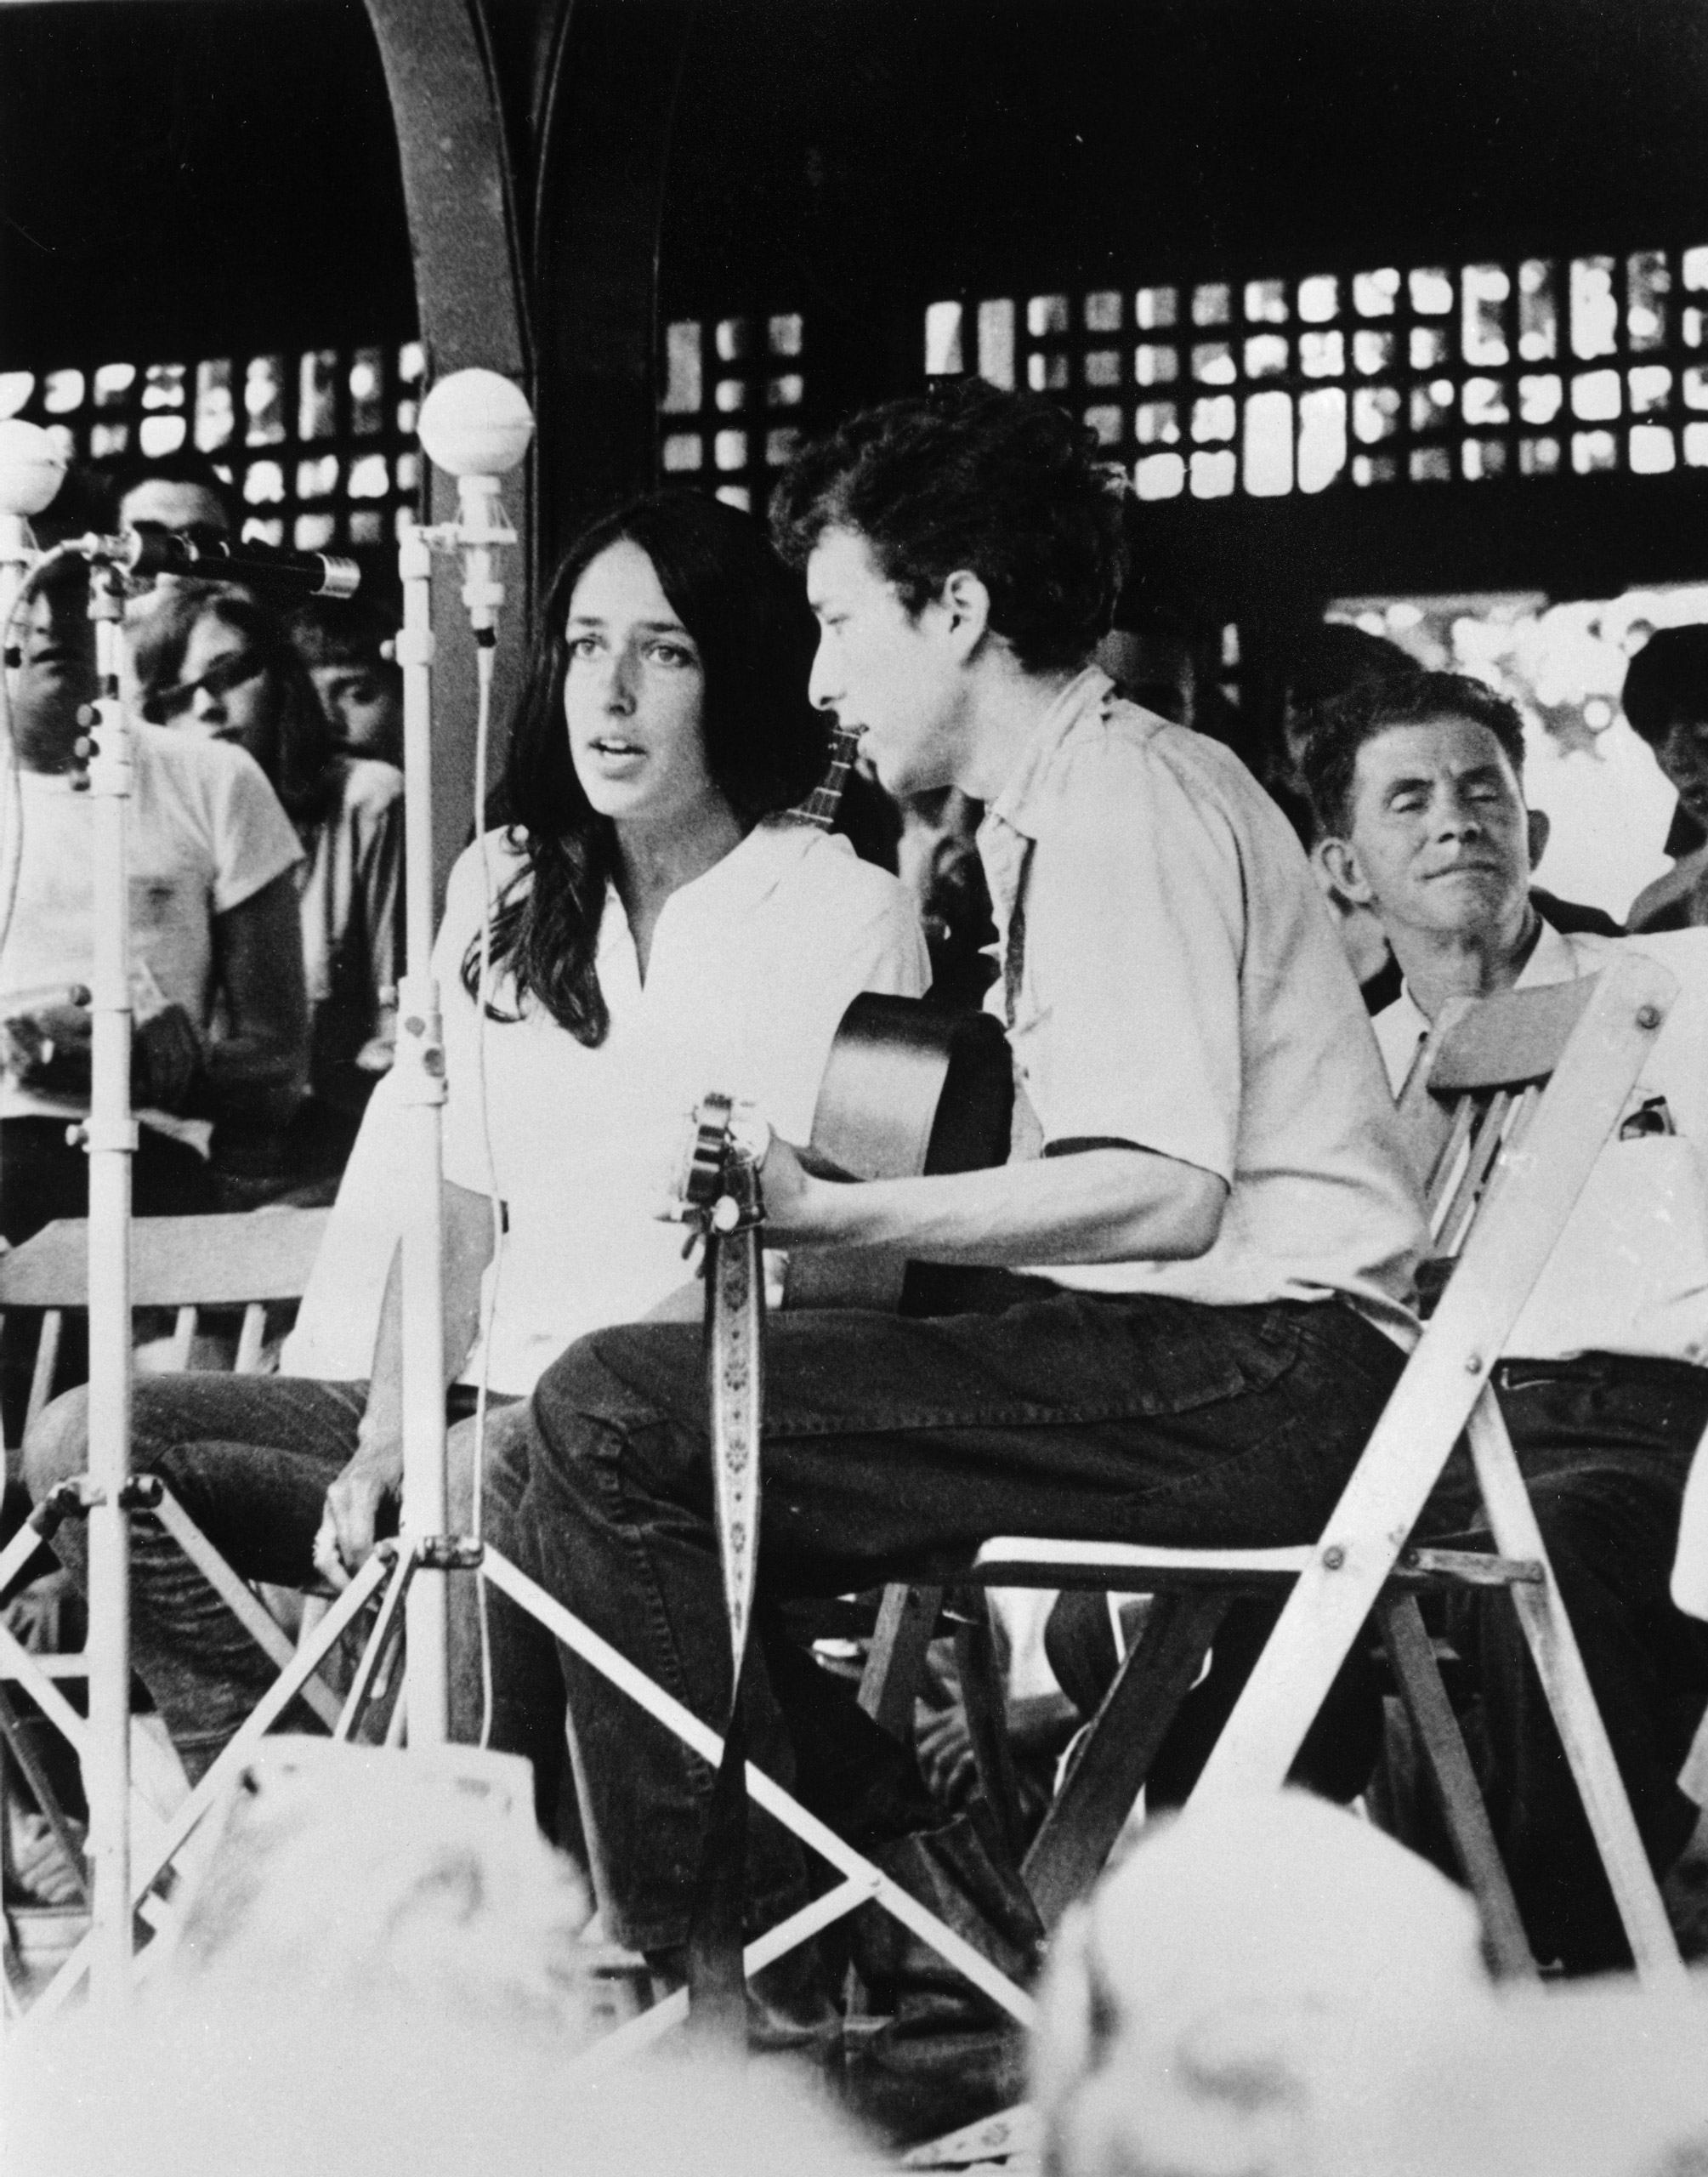 Folk singers Joan Baez and Bob Dylan perform at the Newport Jazz Festival in Newport, R.I. in 1963.